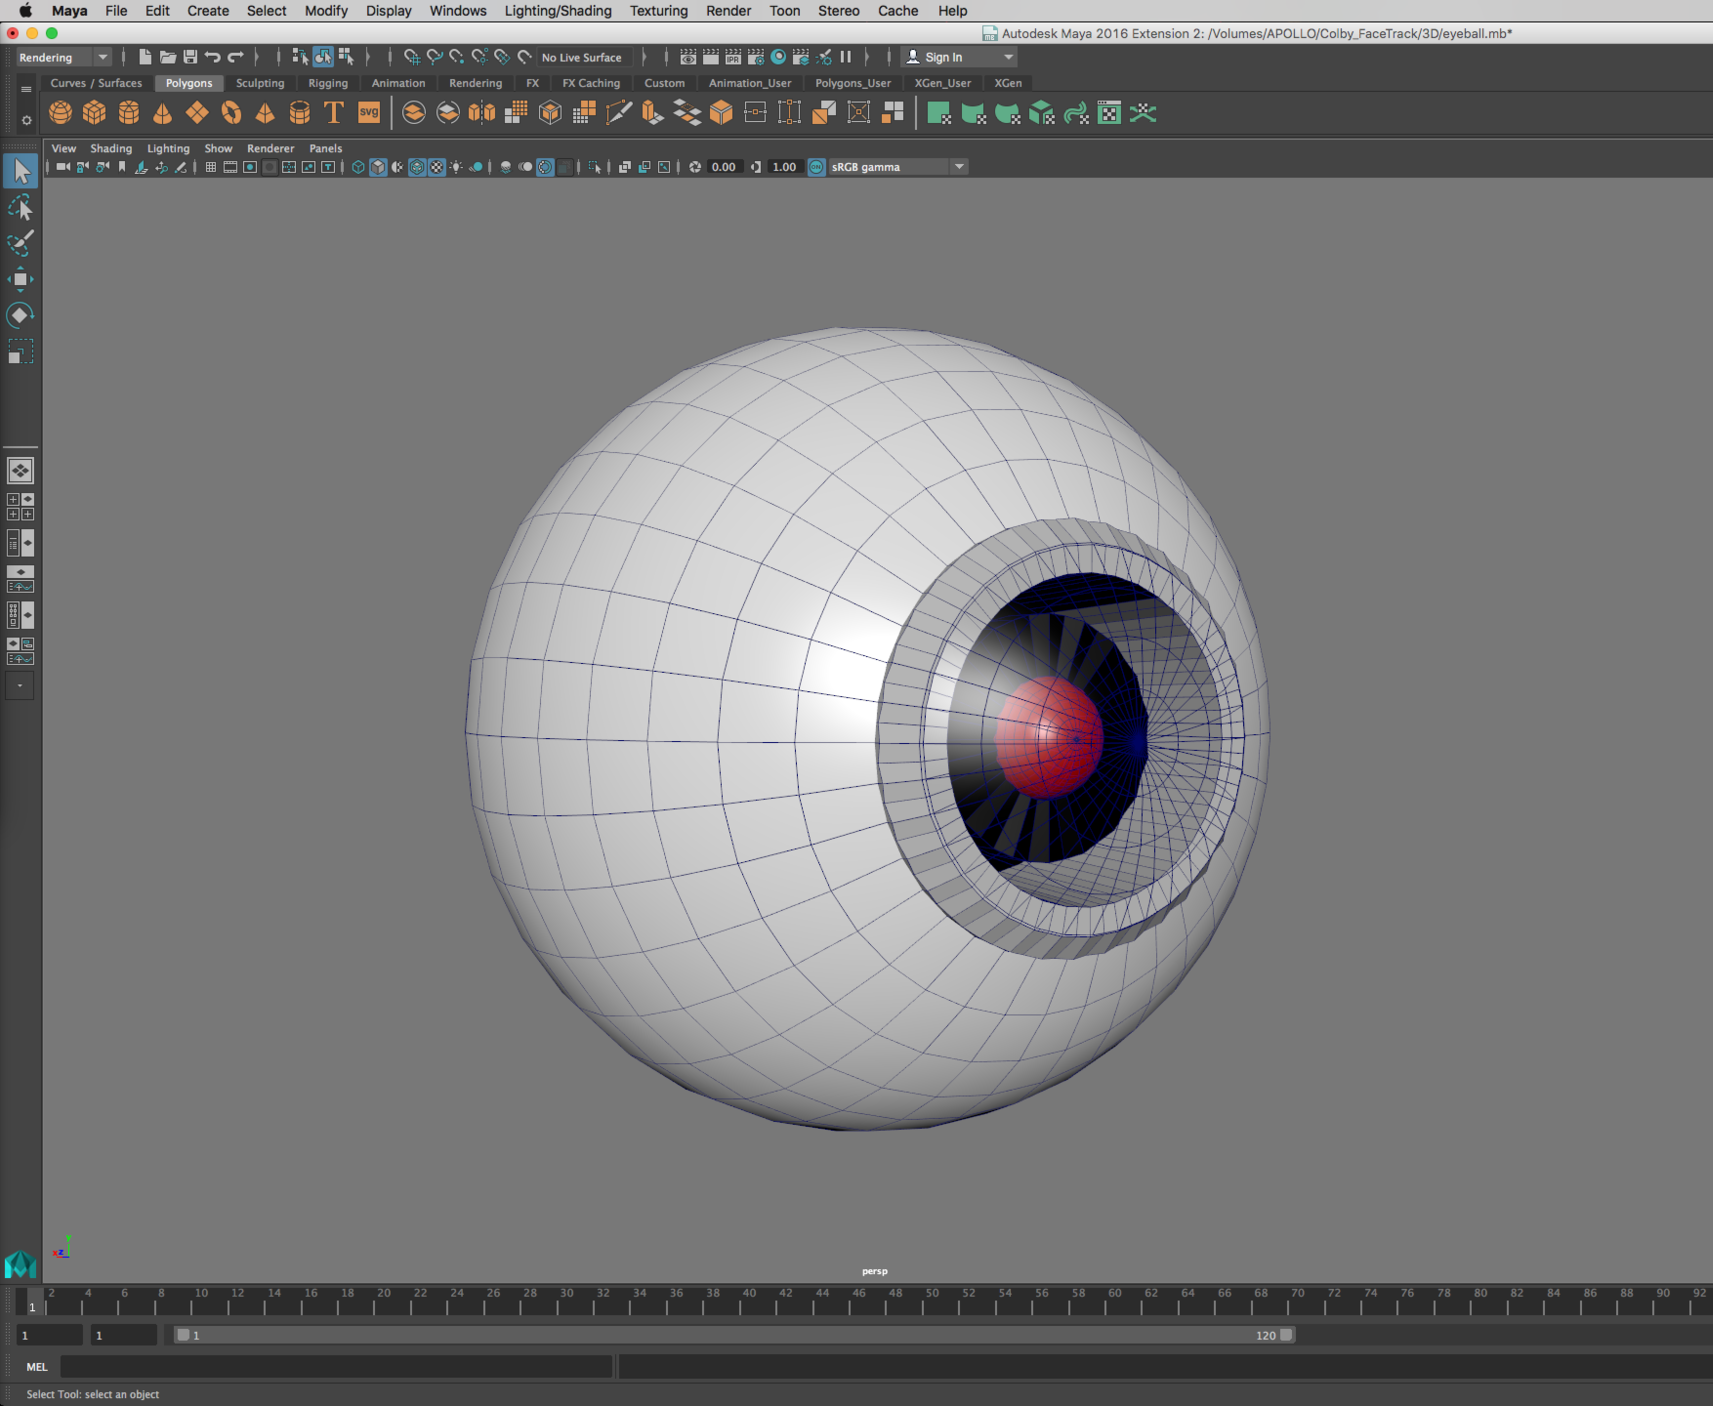 Building the robot eye in Maya